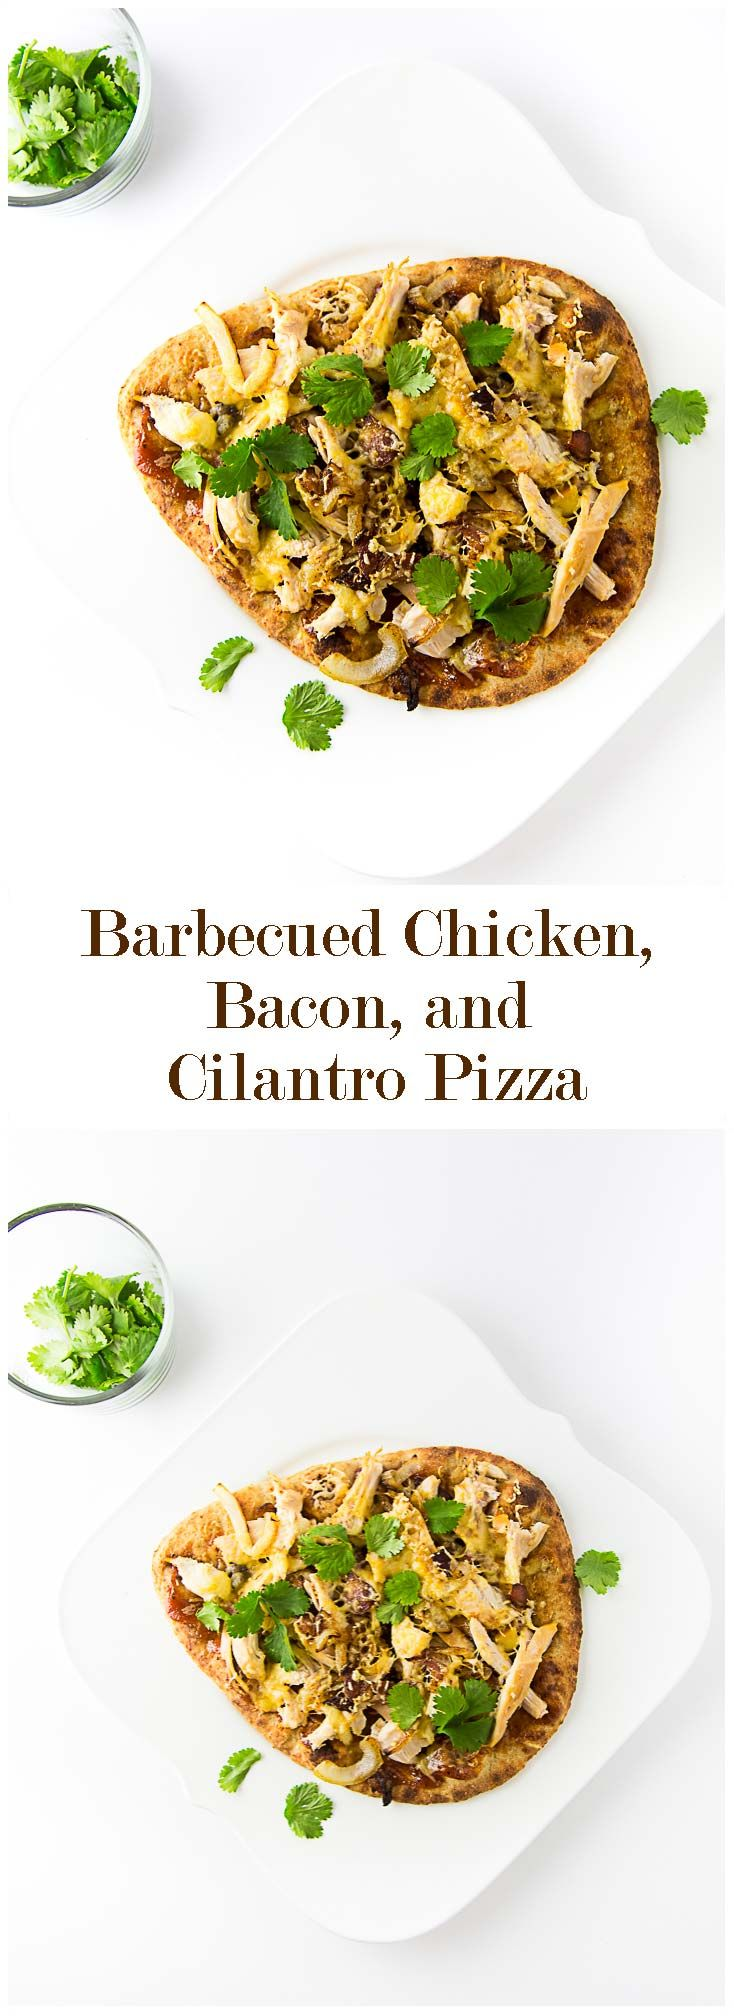 Barbecued Chicken, Bacon and Cilantro Pizza!  Using naan bread and rotisserie chicken makes this easy weeknight dinner come together in minutes!